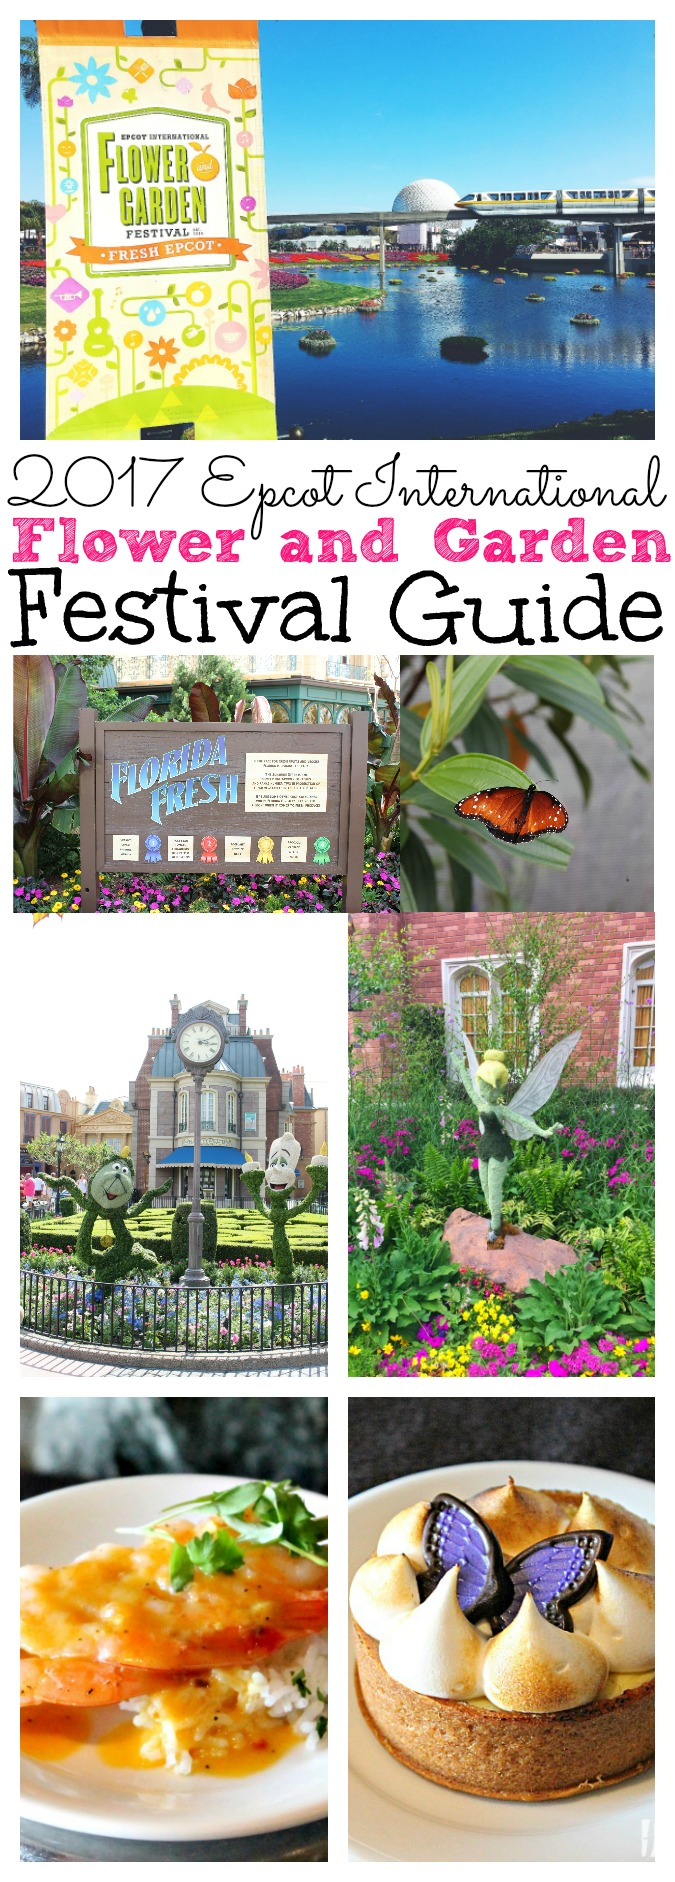 Epcot International Flower and Garden Festival Guide